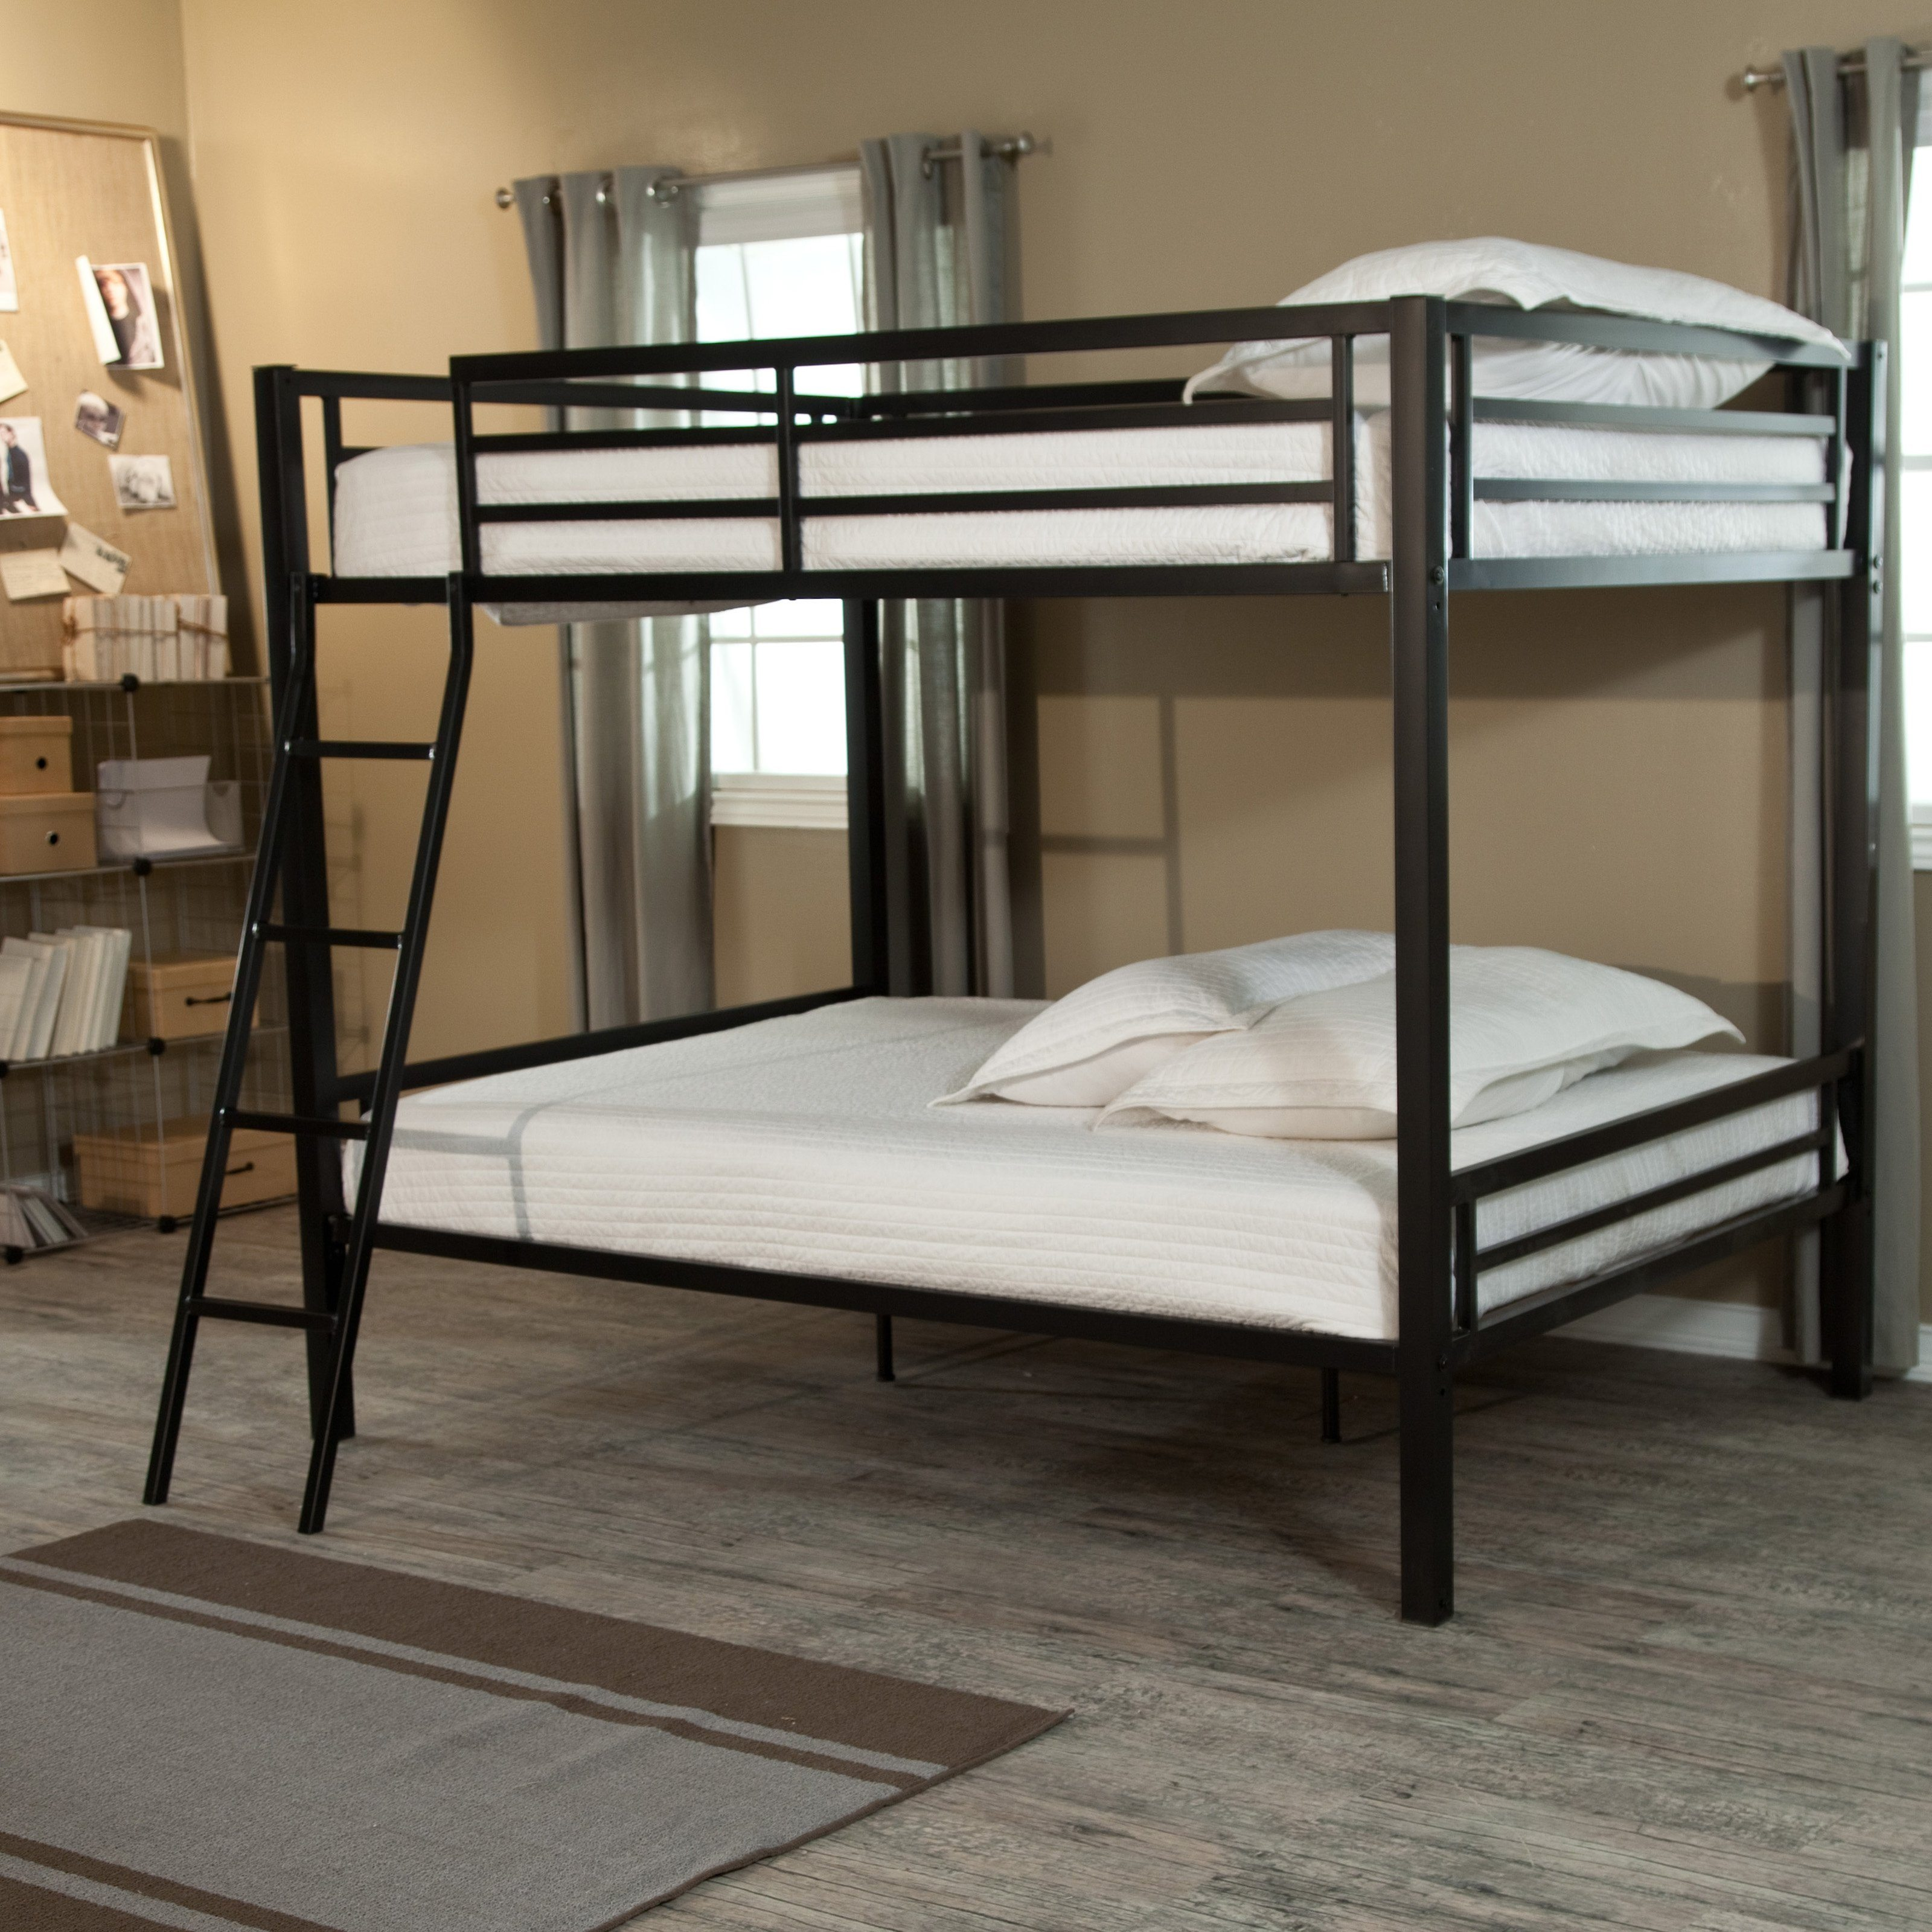 Remarkable Cheap Loft Beds with High Quality for Bedroom: Black Aluminium Cheap Loft Beds With Rectangular Rugs And Hardwood Flooring